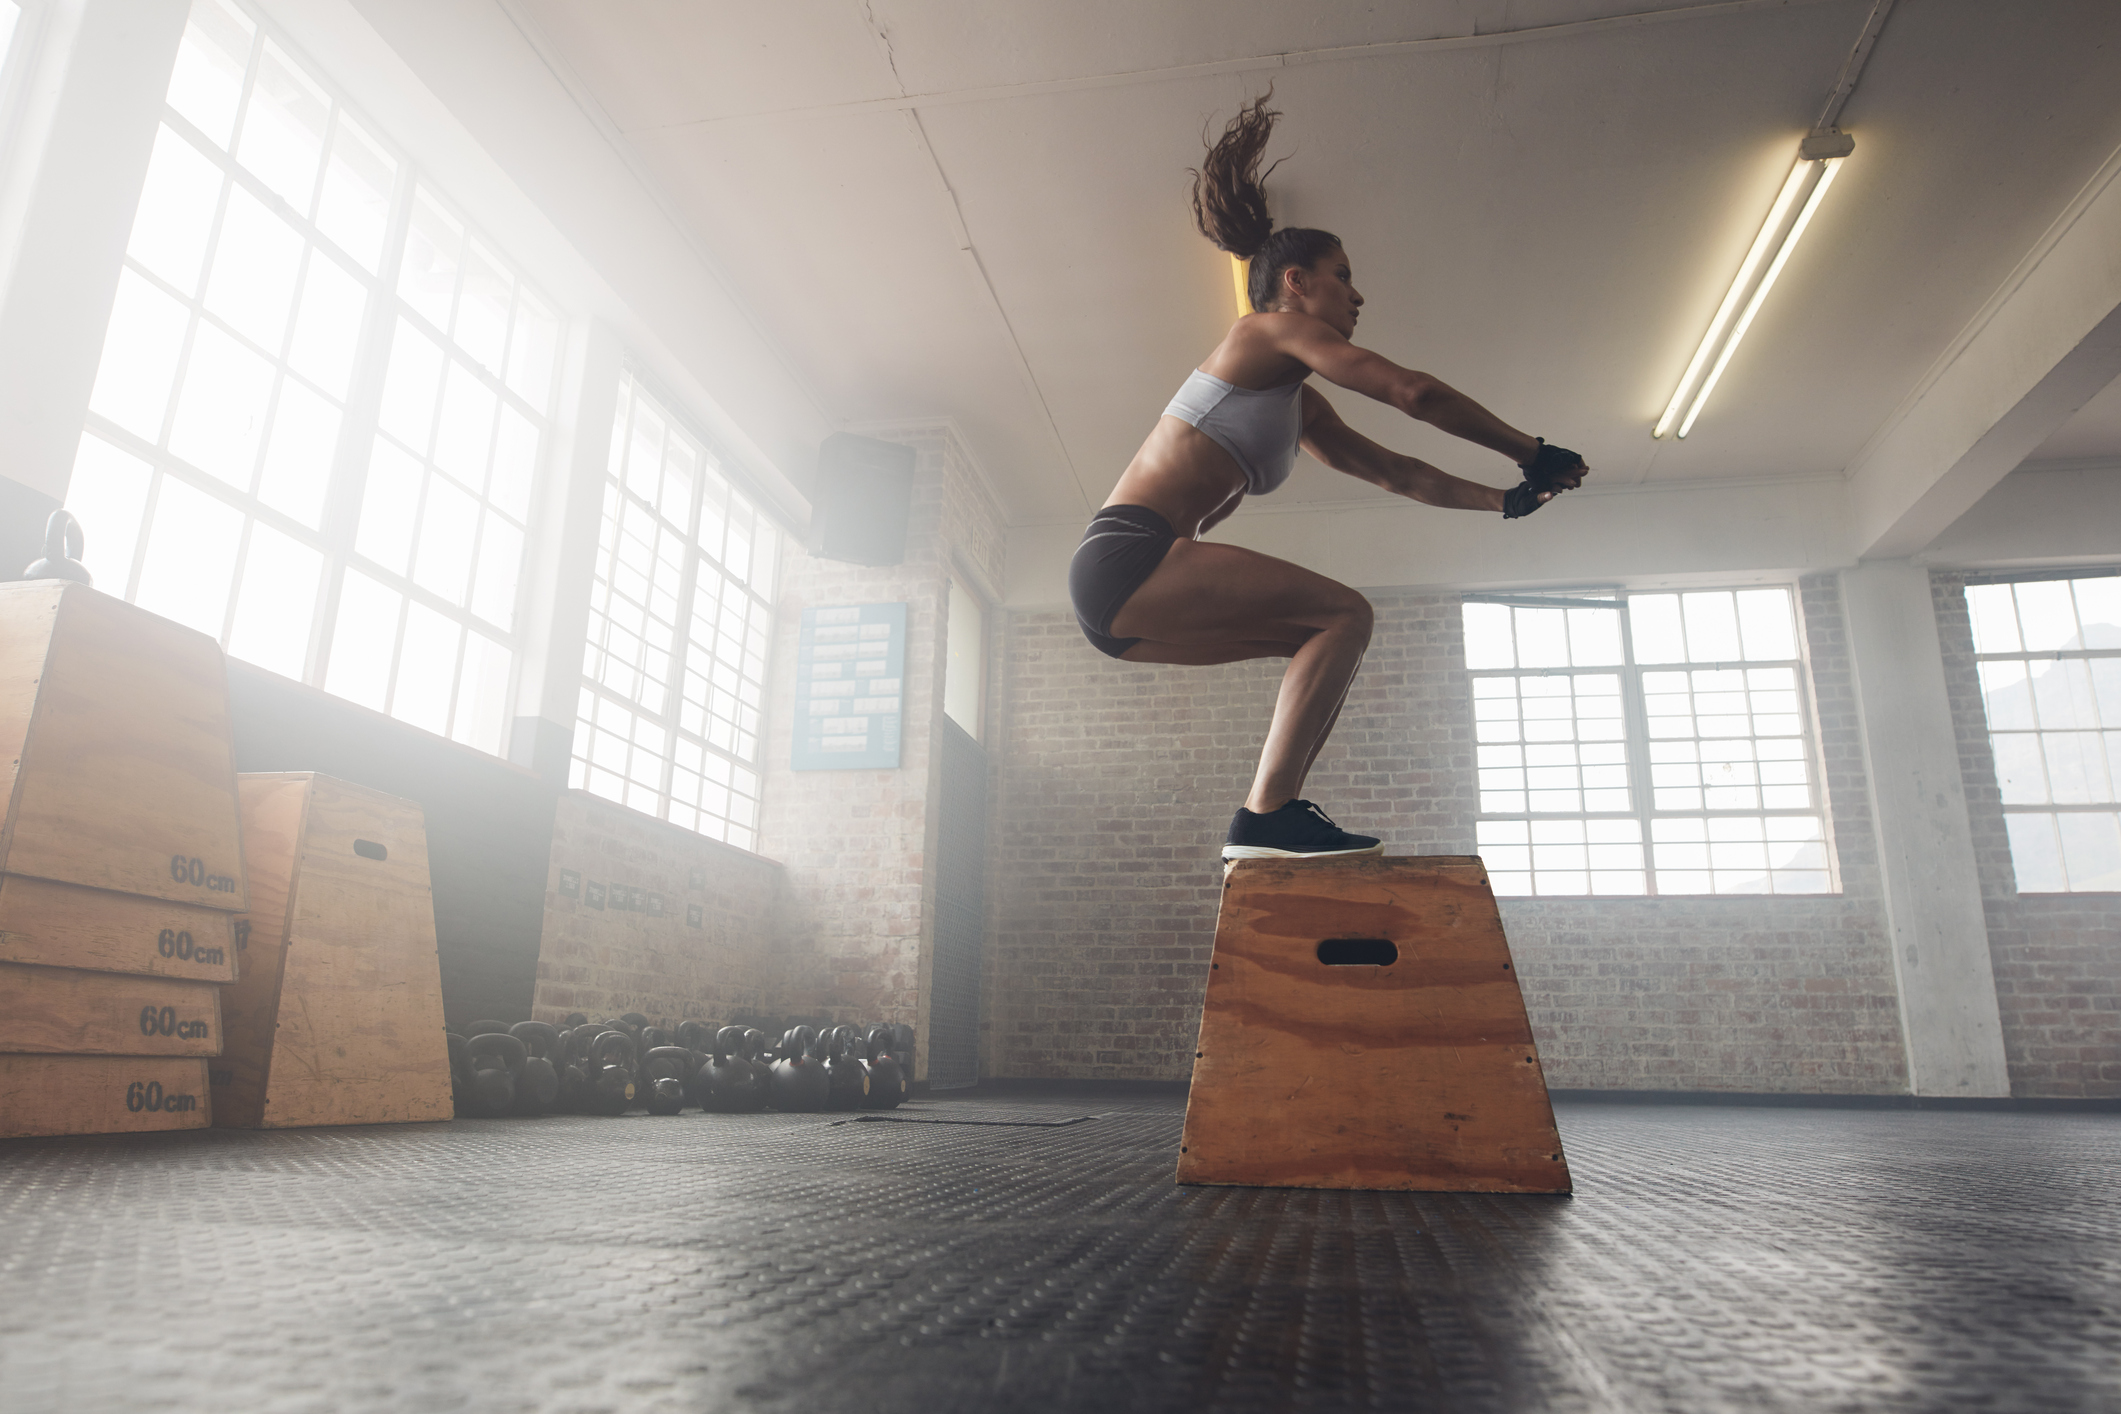 Generic photo of woman doing a box jump in a gym (ThinkStock/PA)